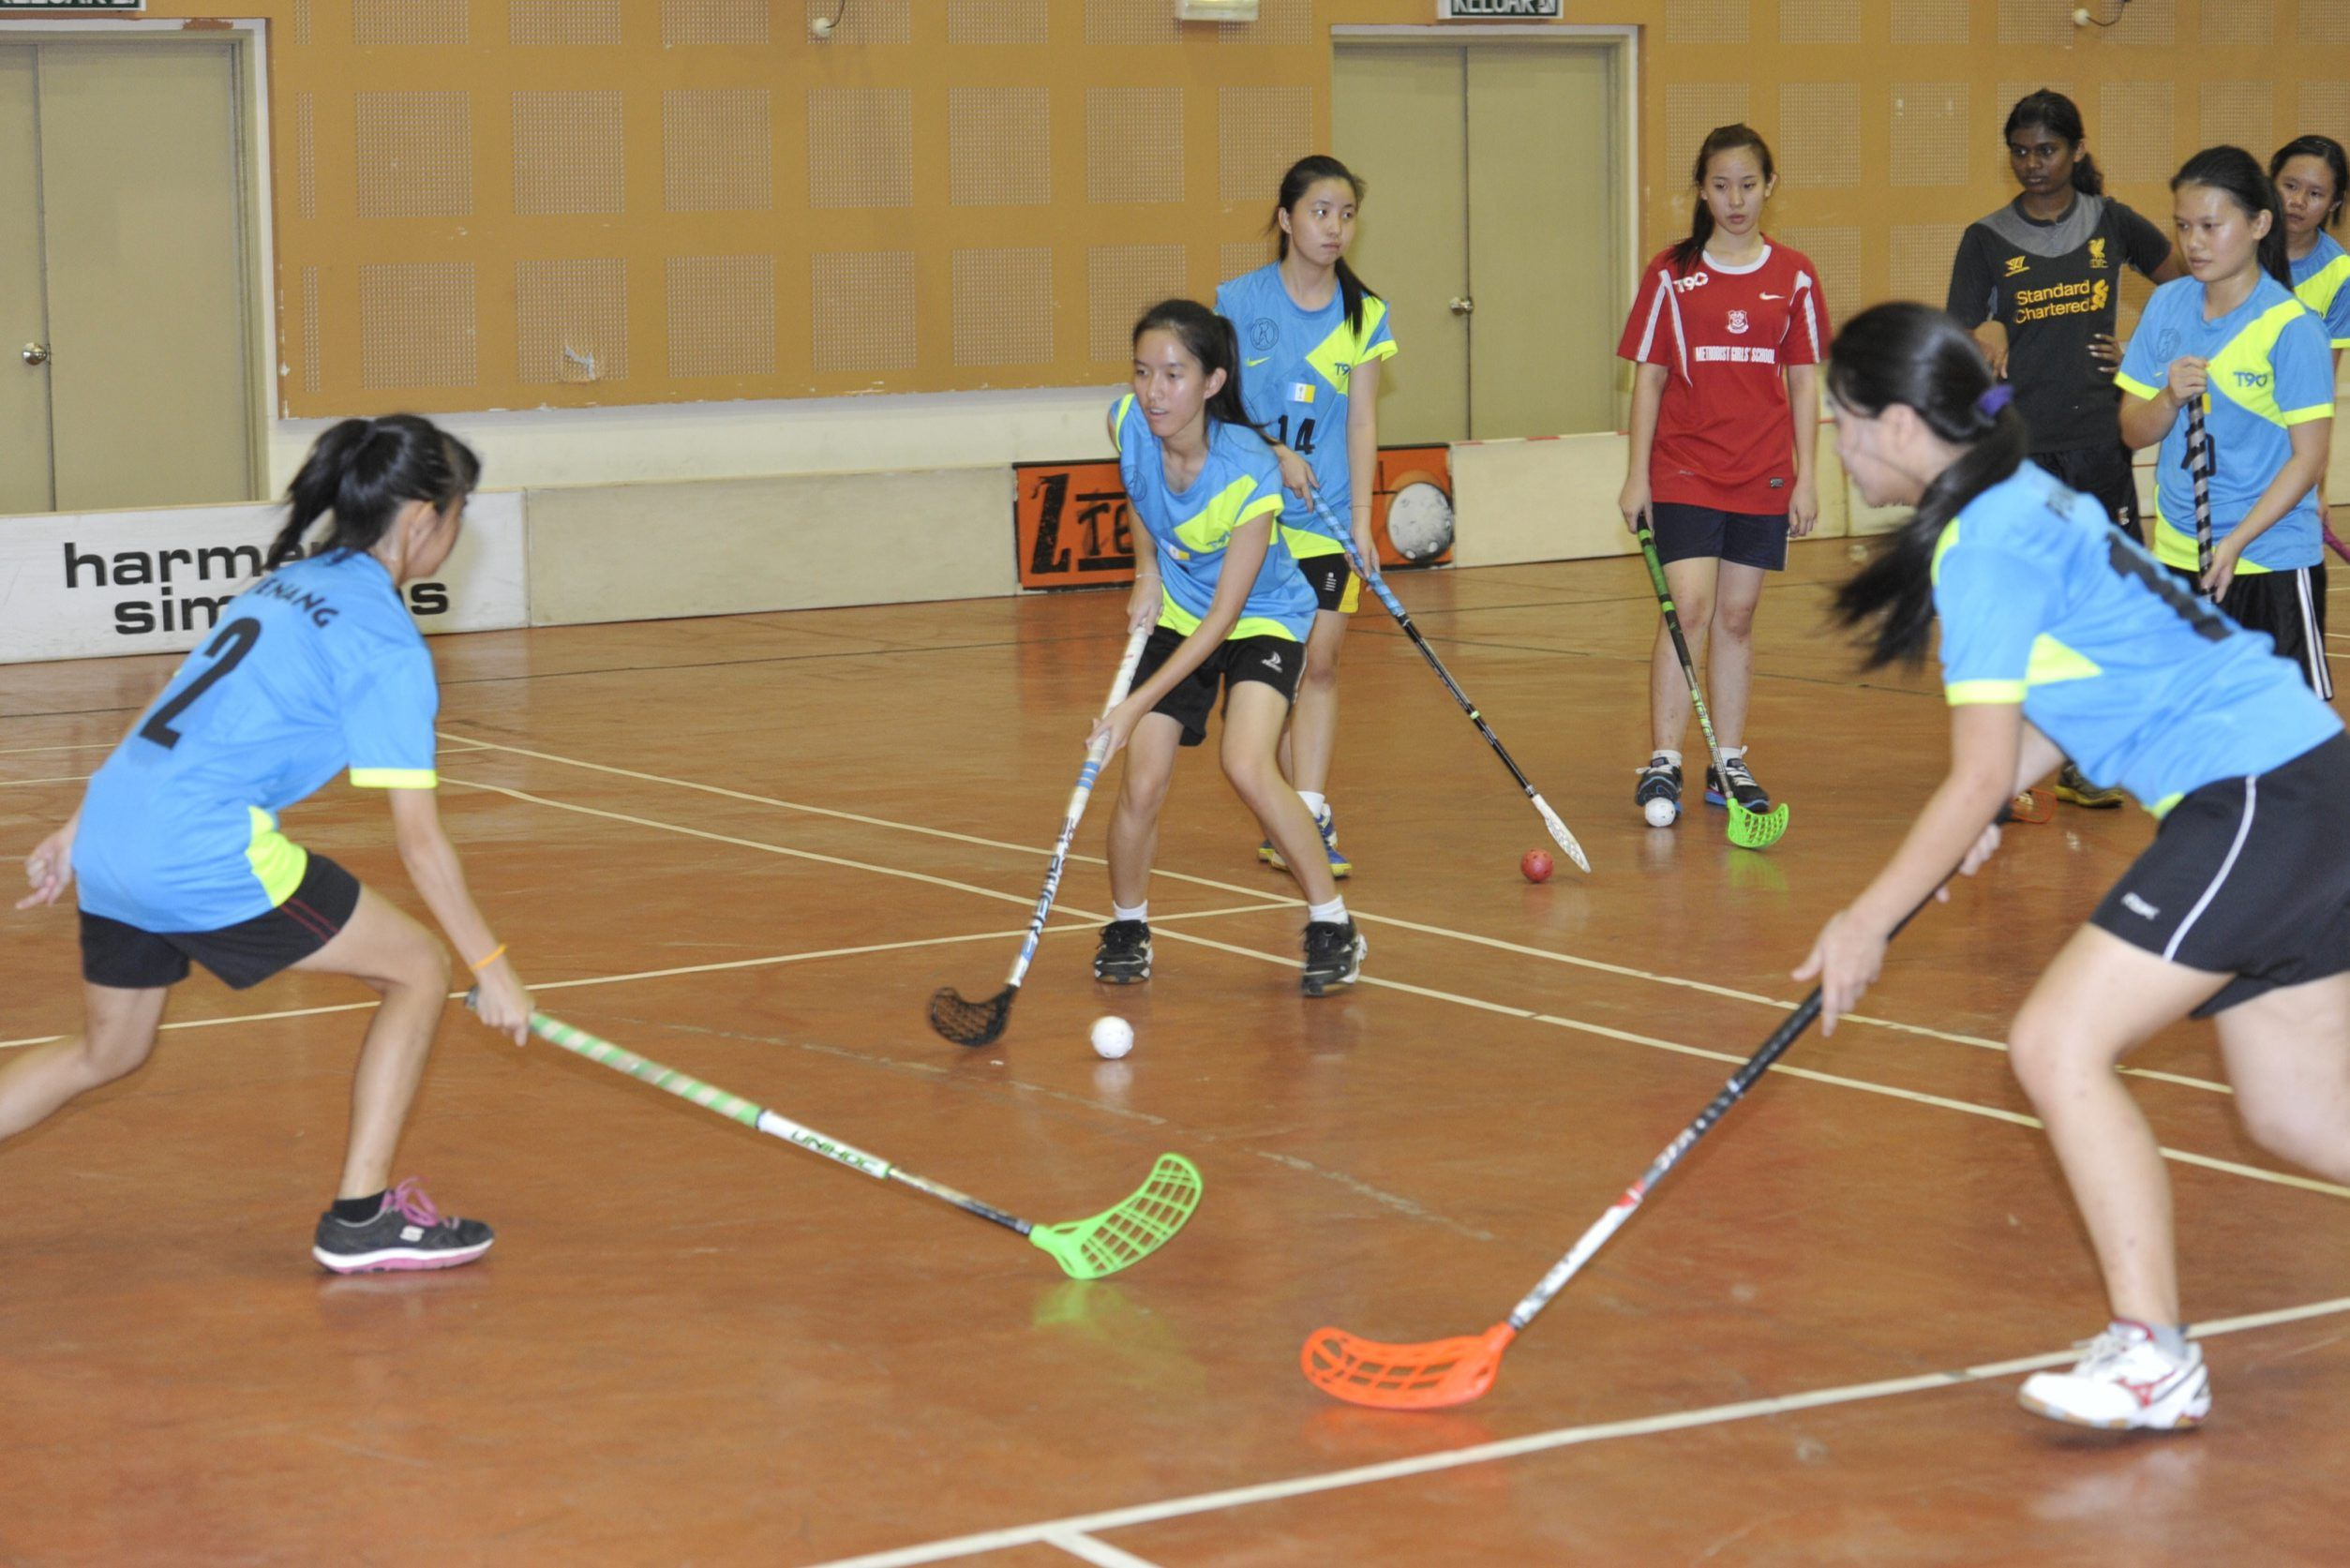 Floorball is a bit like indoor hockey, albeit safer and using rink boards.